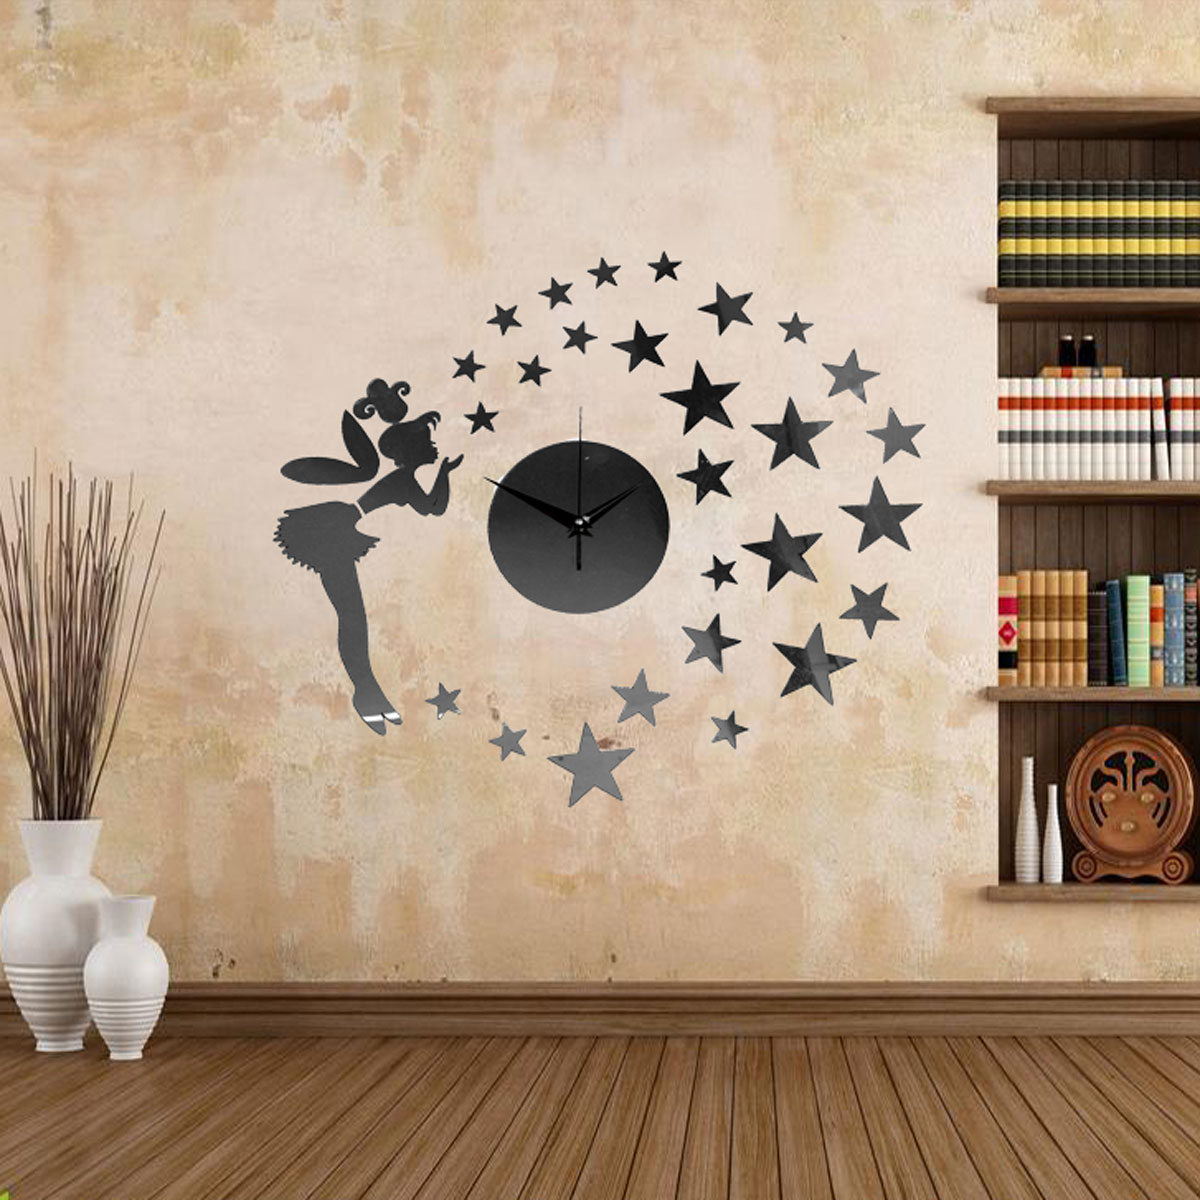 fee ange sticker mural horloge montre pendule 3d diy adh sive chambre salon home ebay. Black Bedroom Furniture Sets. Home Design Ideas